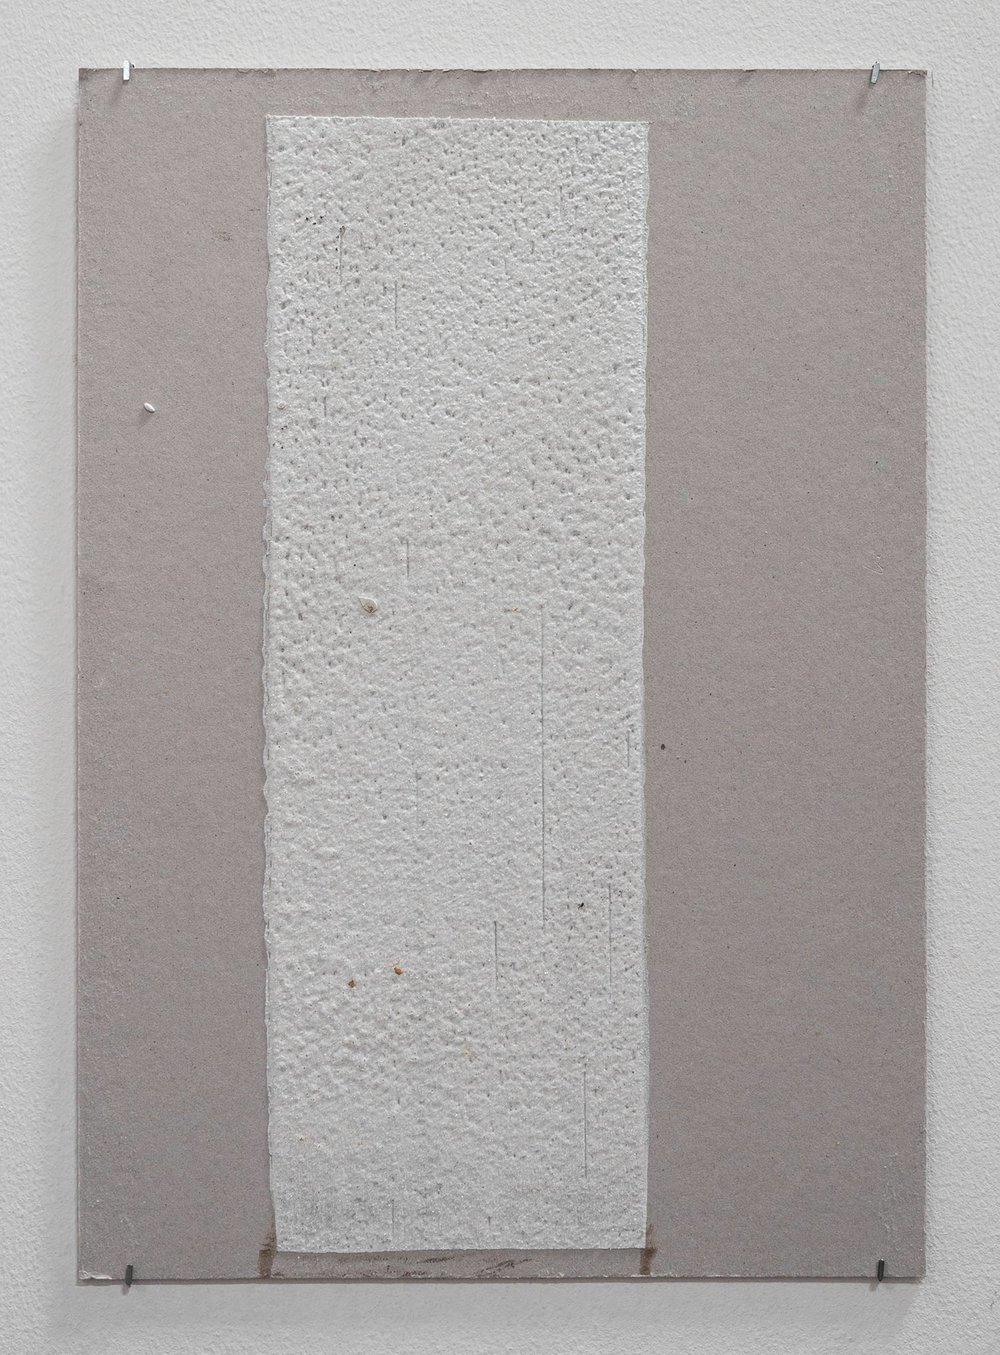 150mm (W), 1.5mm (T), White, Random mark, hand marking, Al Barsha South, Unnamed street,  2017  Thermoplastic paint and reflective glass particles on grey board  35 x 50 cm